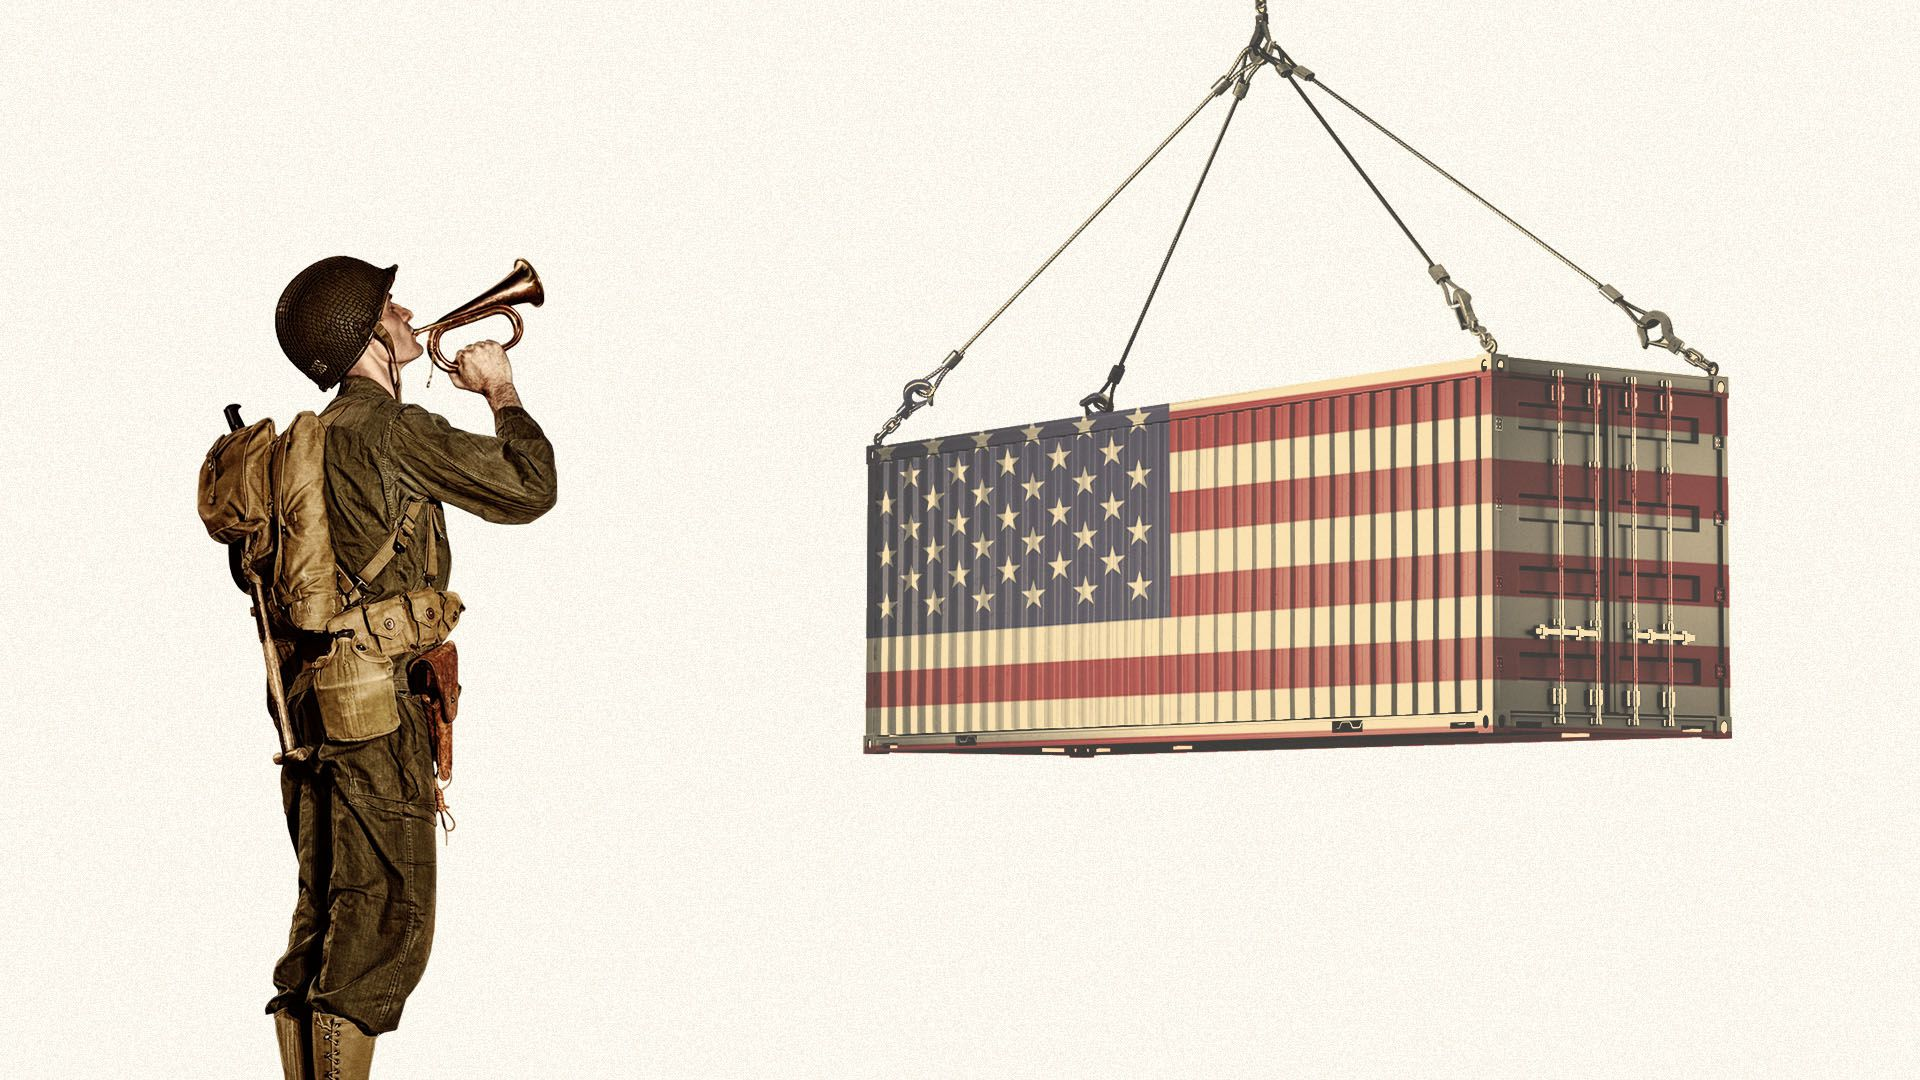 Illustration of a World War II soldier playing taps to an American flag shipping container